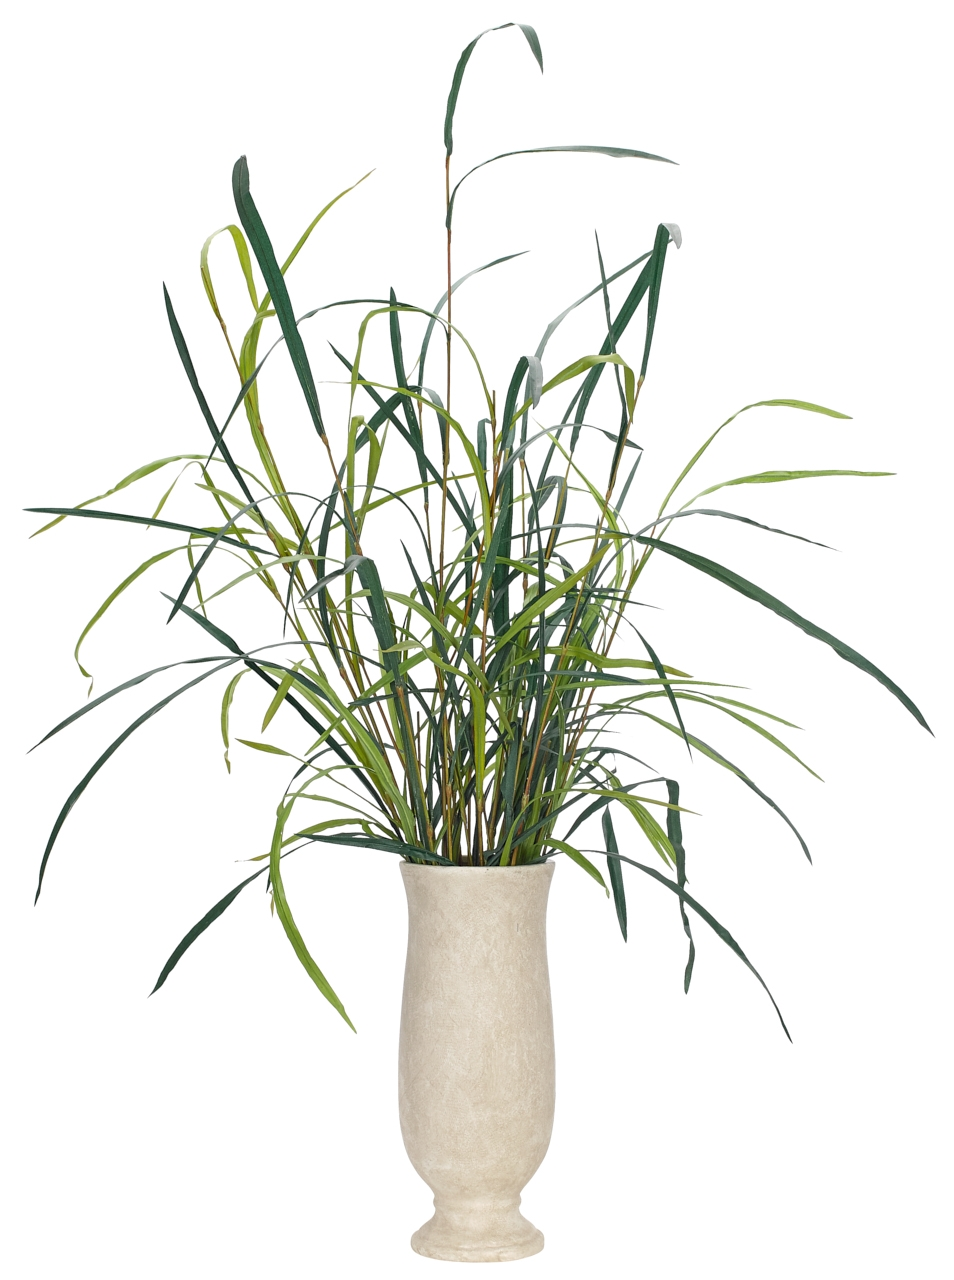 Marsh Grass, Pottery Planter Antique White, 40wx34dx53h